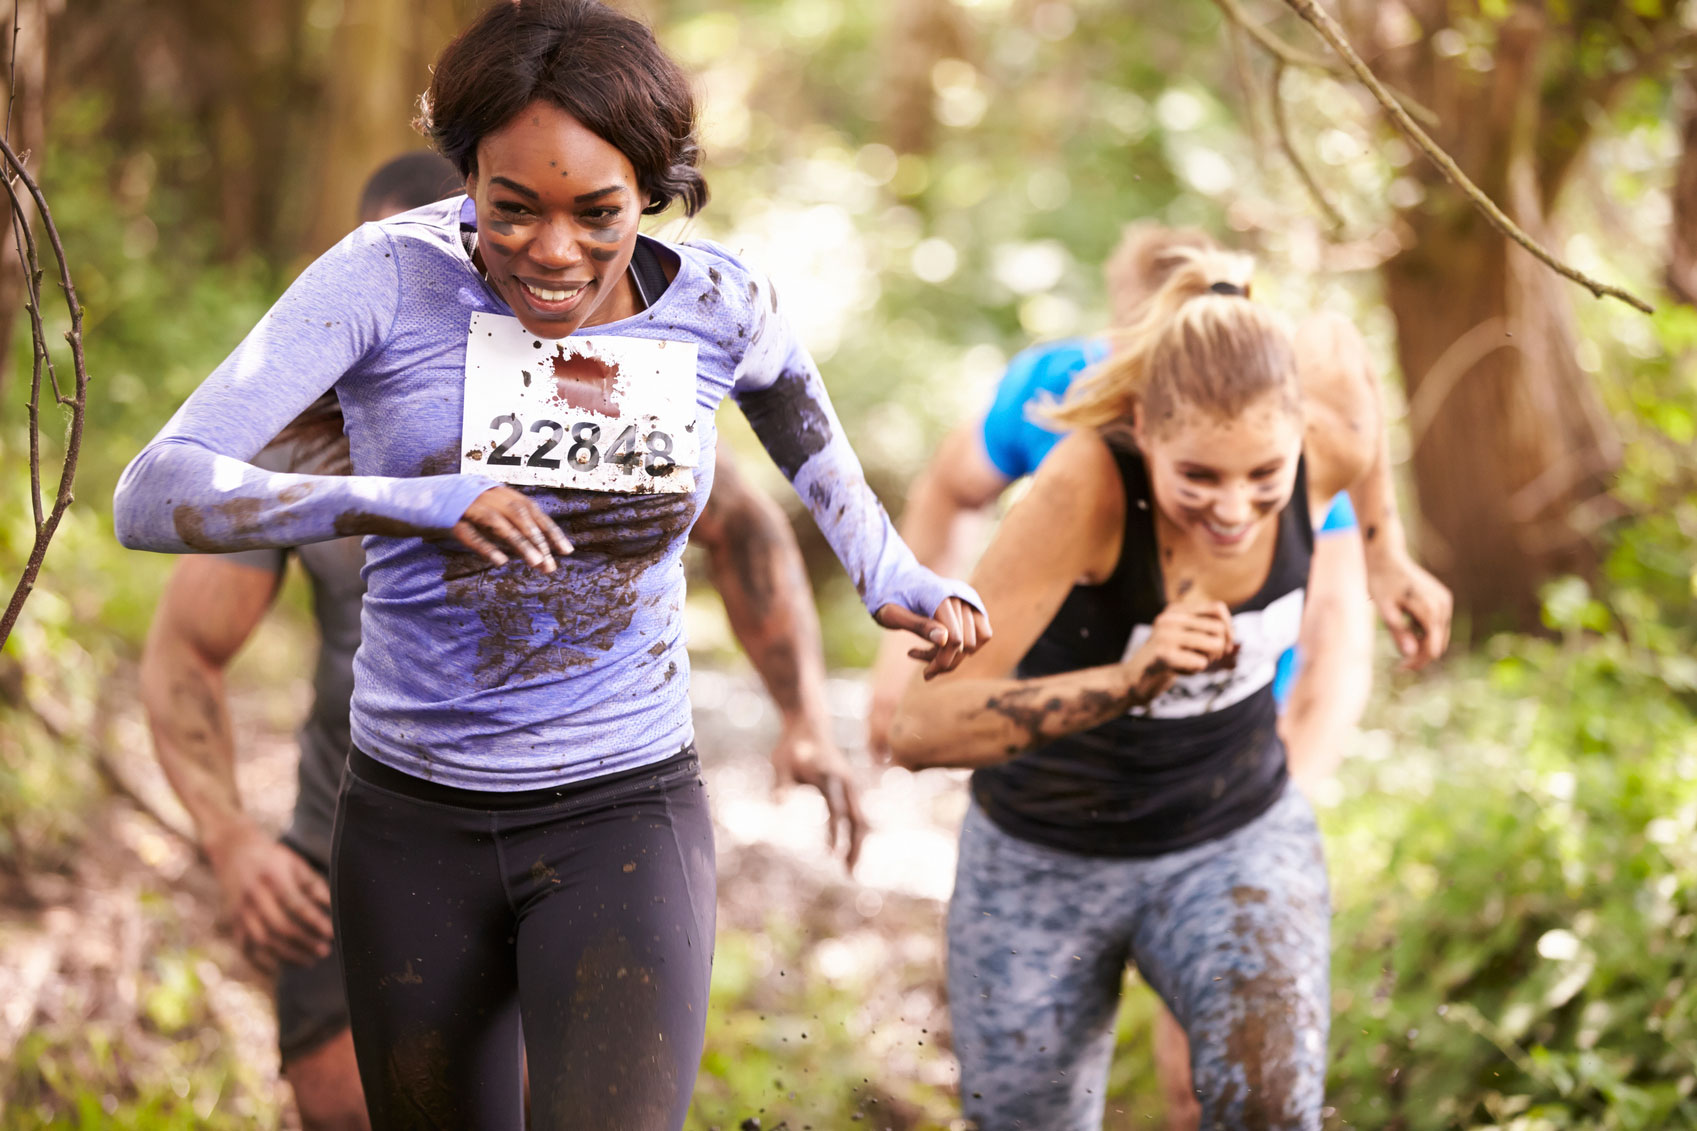 Running challenges are a way to earn funds for your Community Group